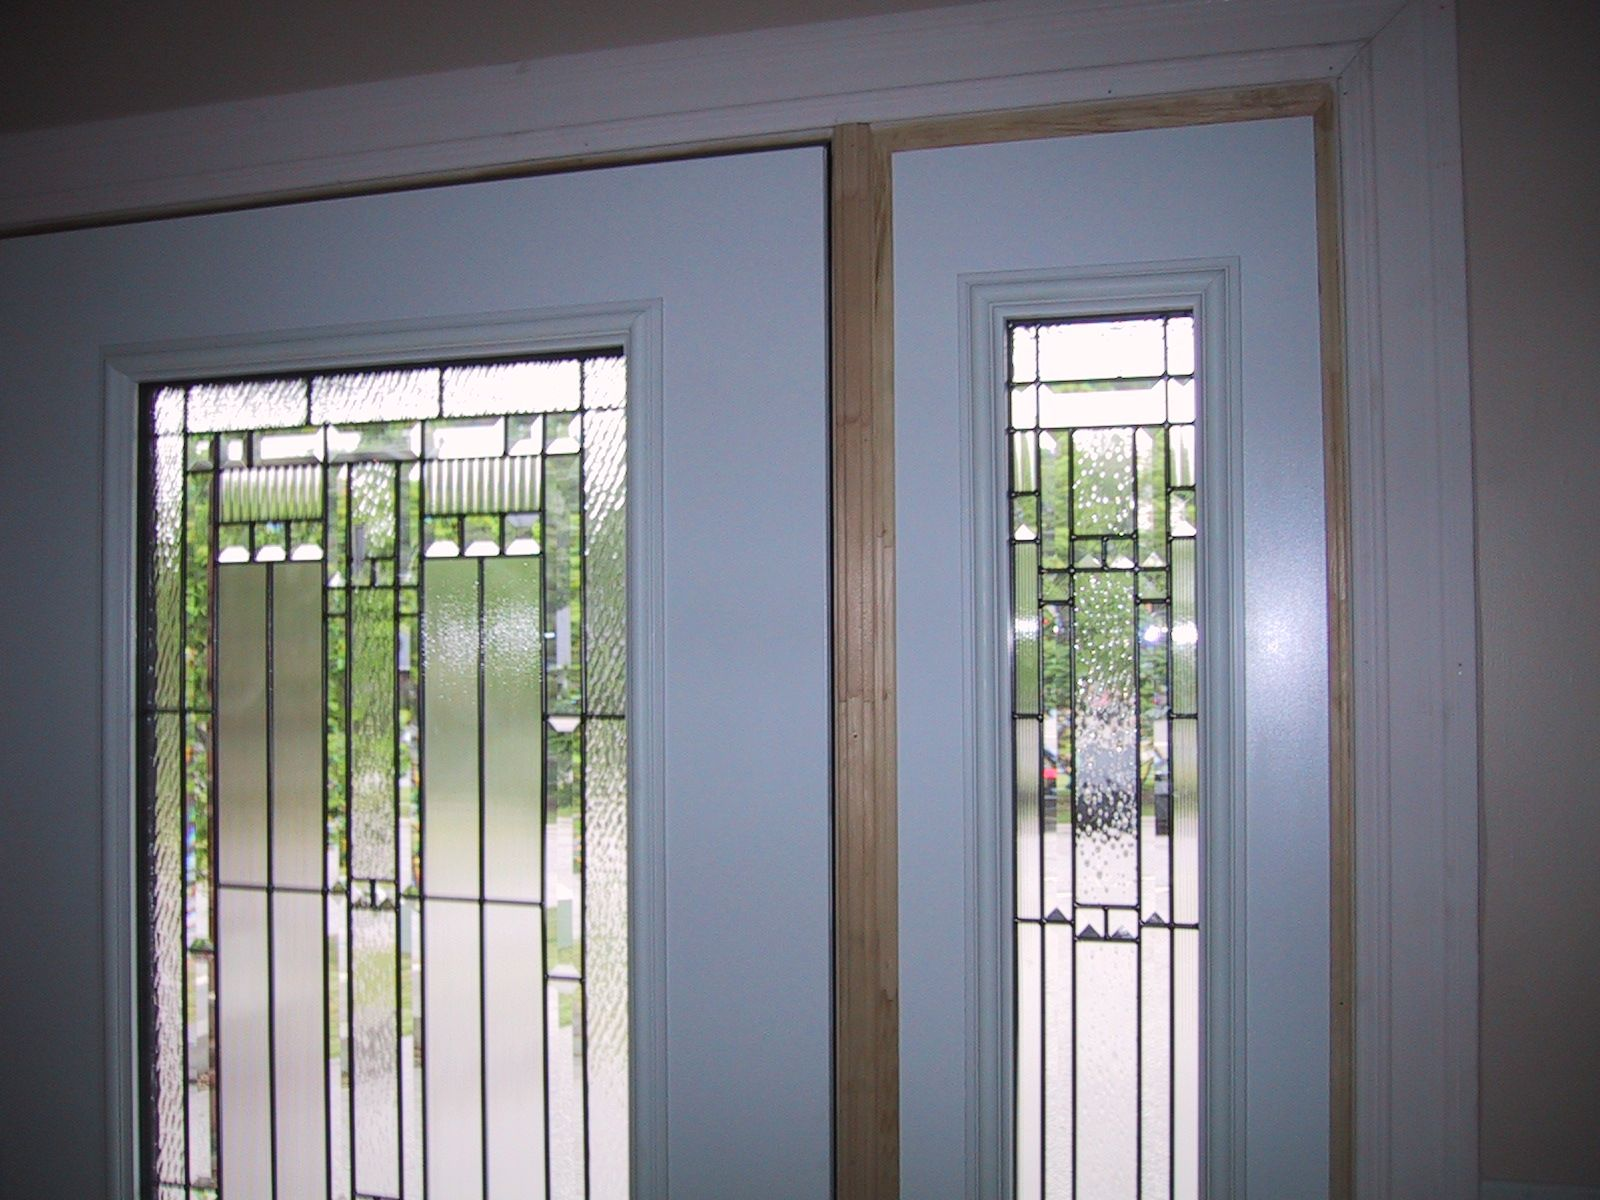 Exterior Door Glass Inserts The Glass Inserts Where You Cannot - Exterior door glass insert replacement